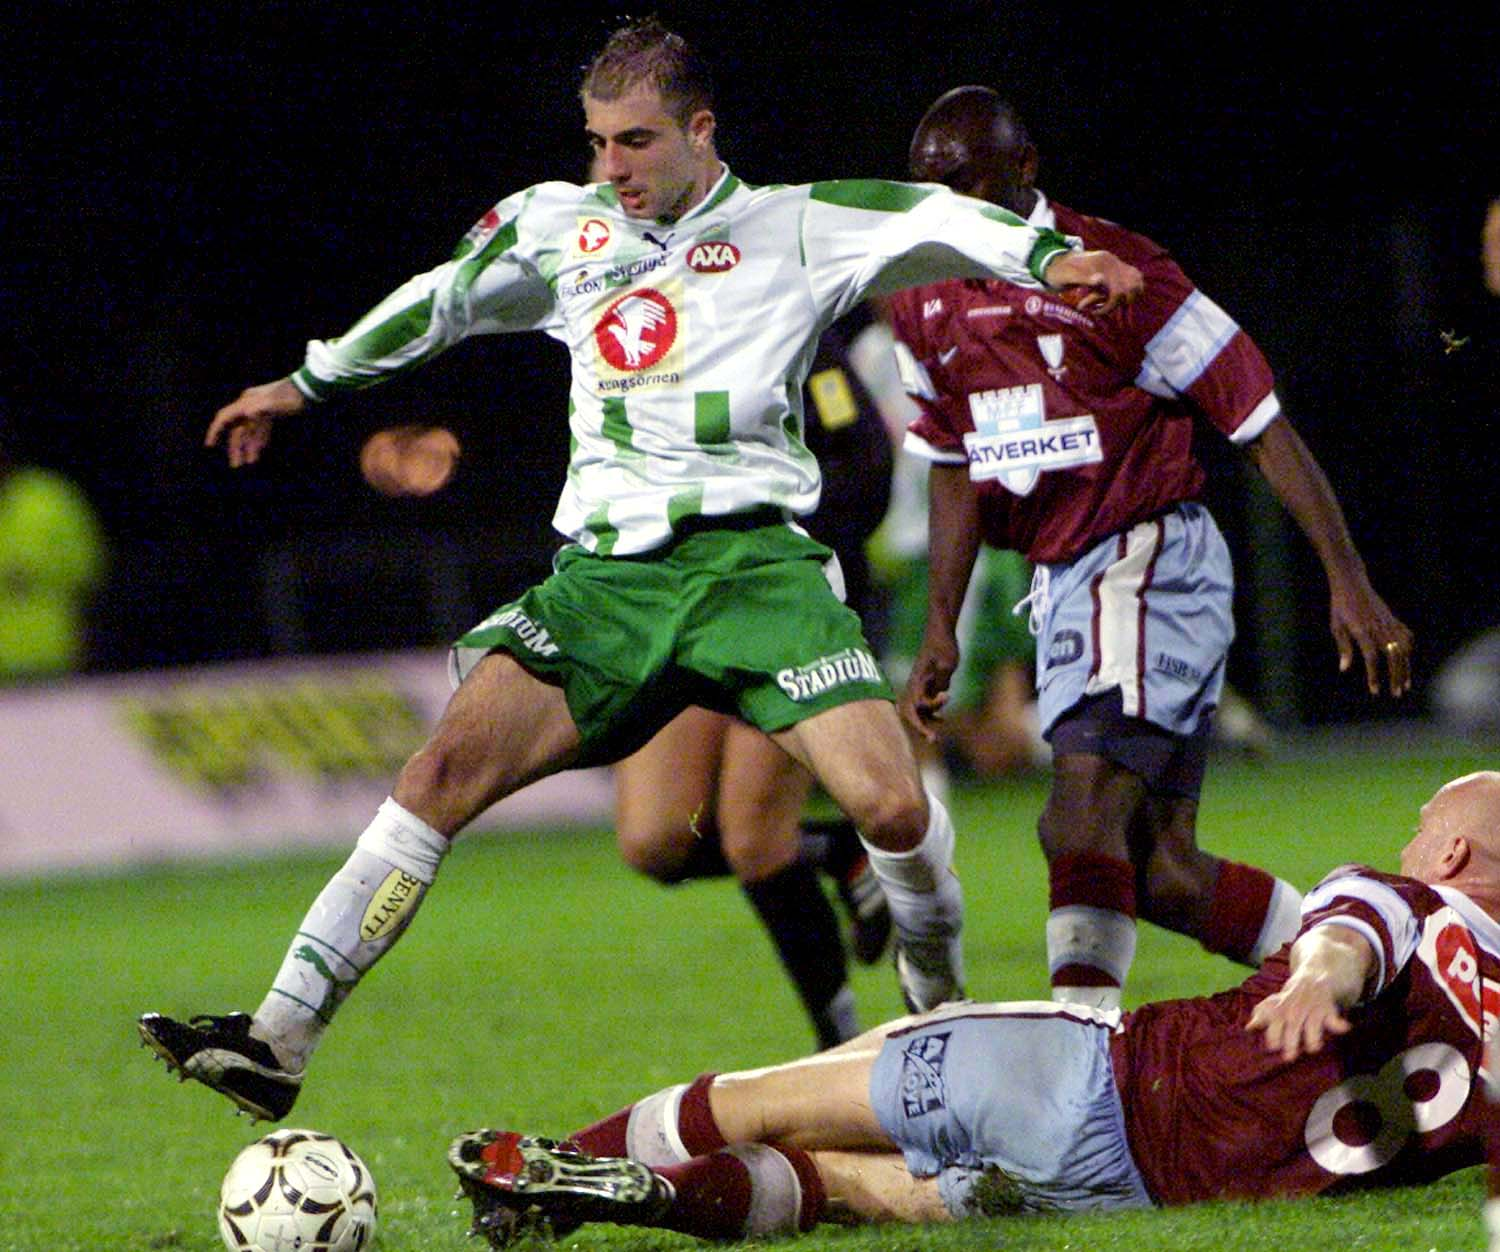 1 Sep 2001:  Hammarby's Kennedy Bakircioglu in action while Malmo's Peter Sorensen lies on the ground during the Swedish League soccer match played between Hammarby and Malmo the game ended 4-1. Hammarby lead the Swedish League. DIGITAL IMAGE.  MandatoryC